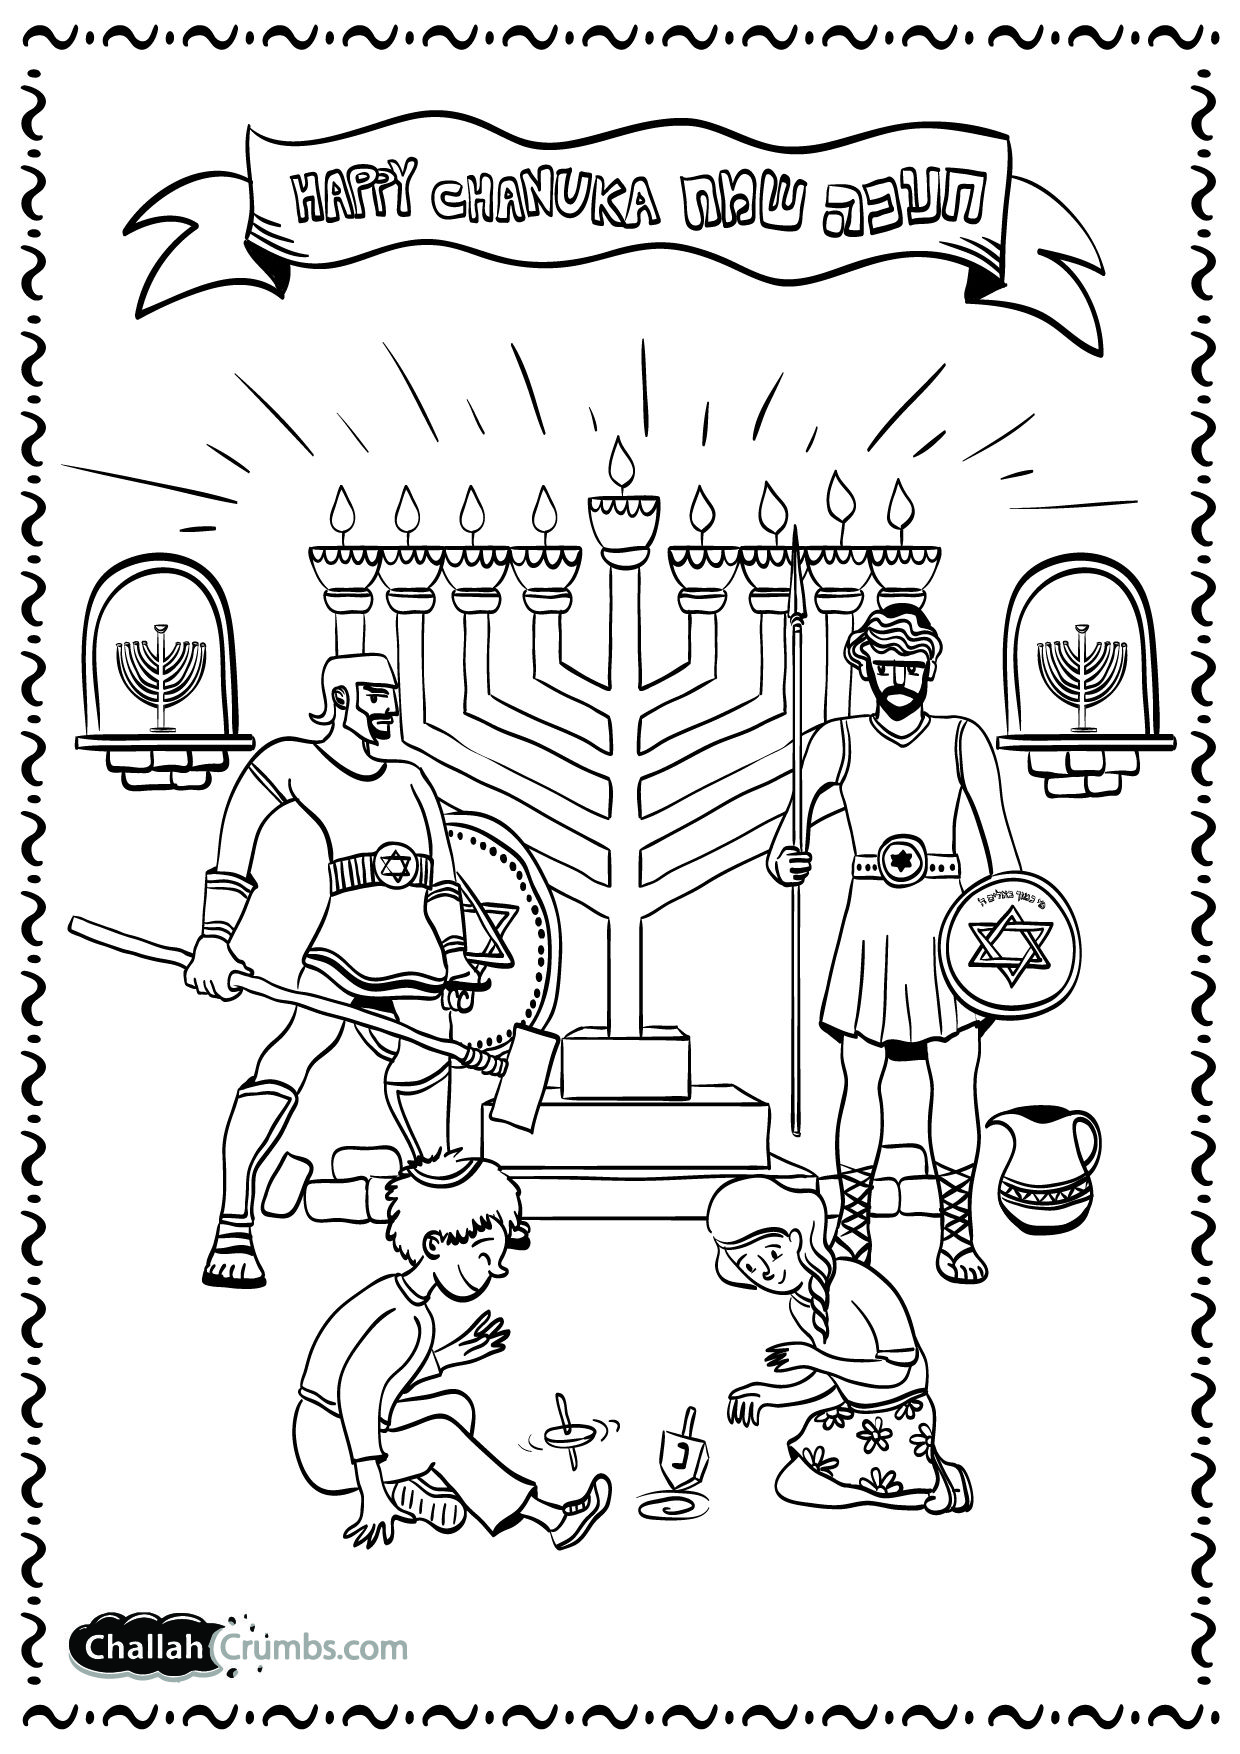 A Fun Hanukkah Coloring Page Bible Coloring Coloring Pages